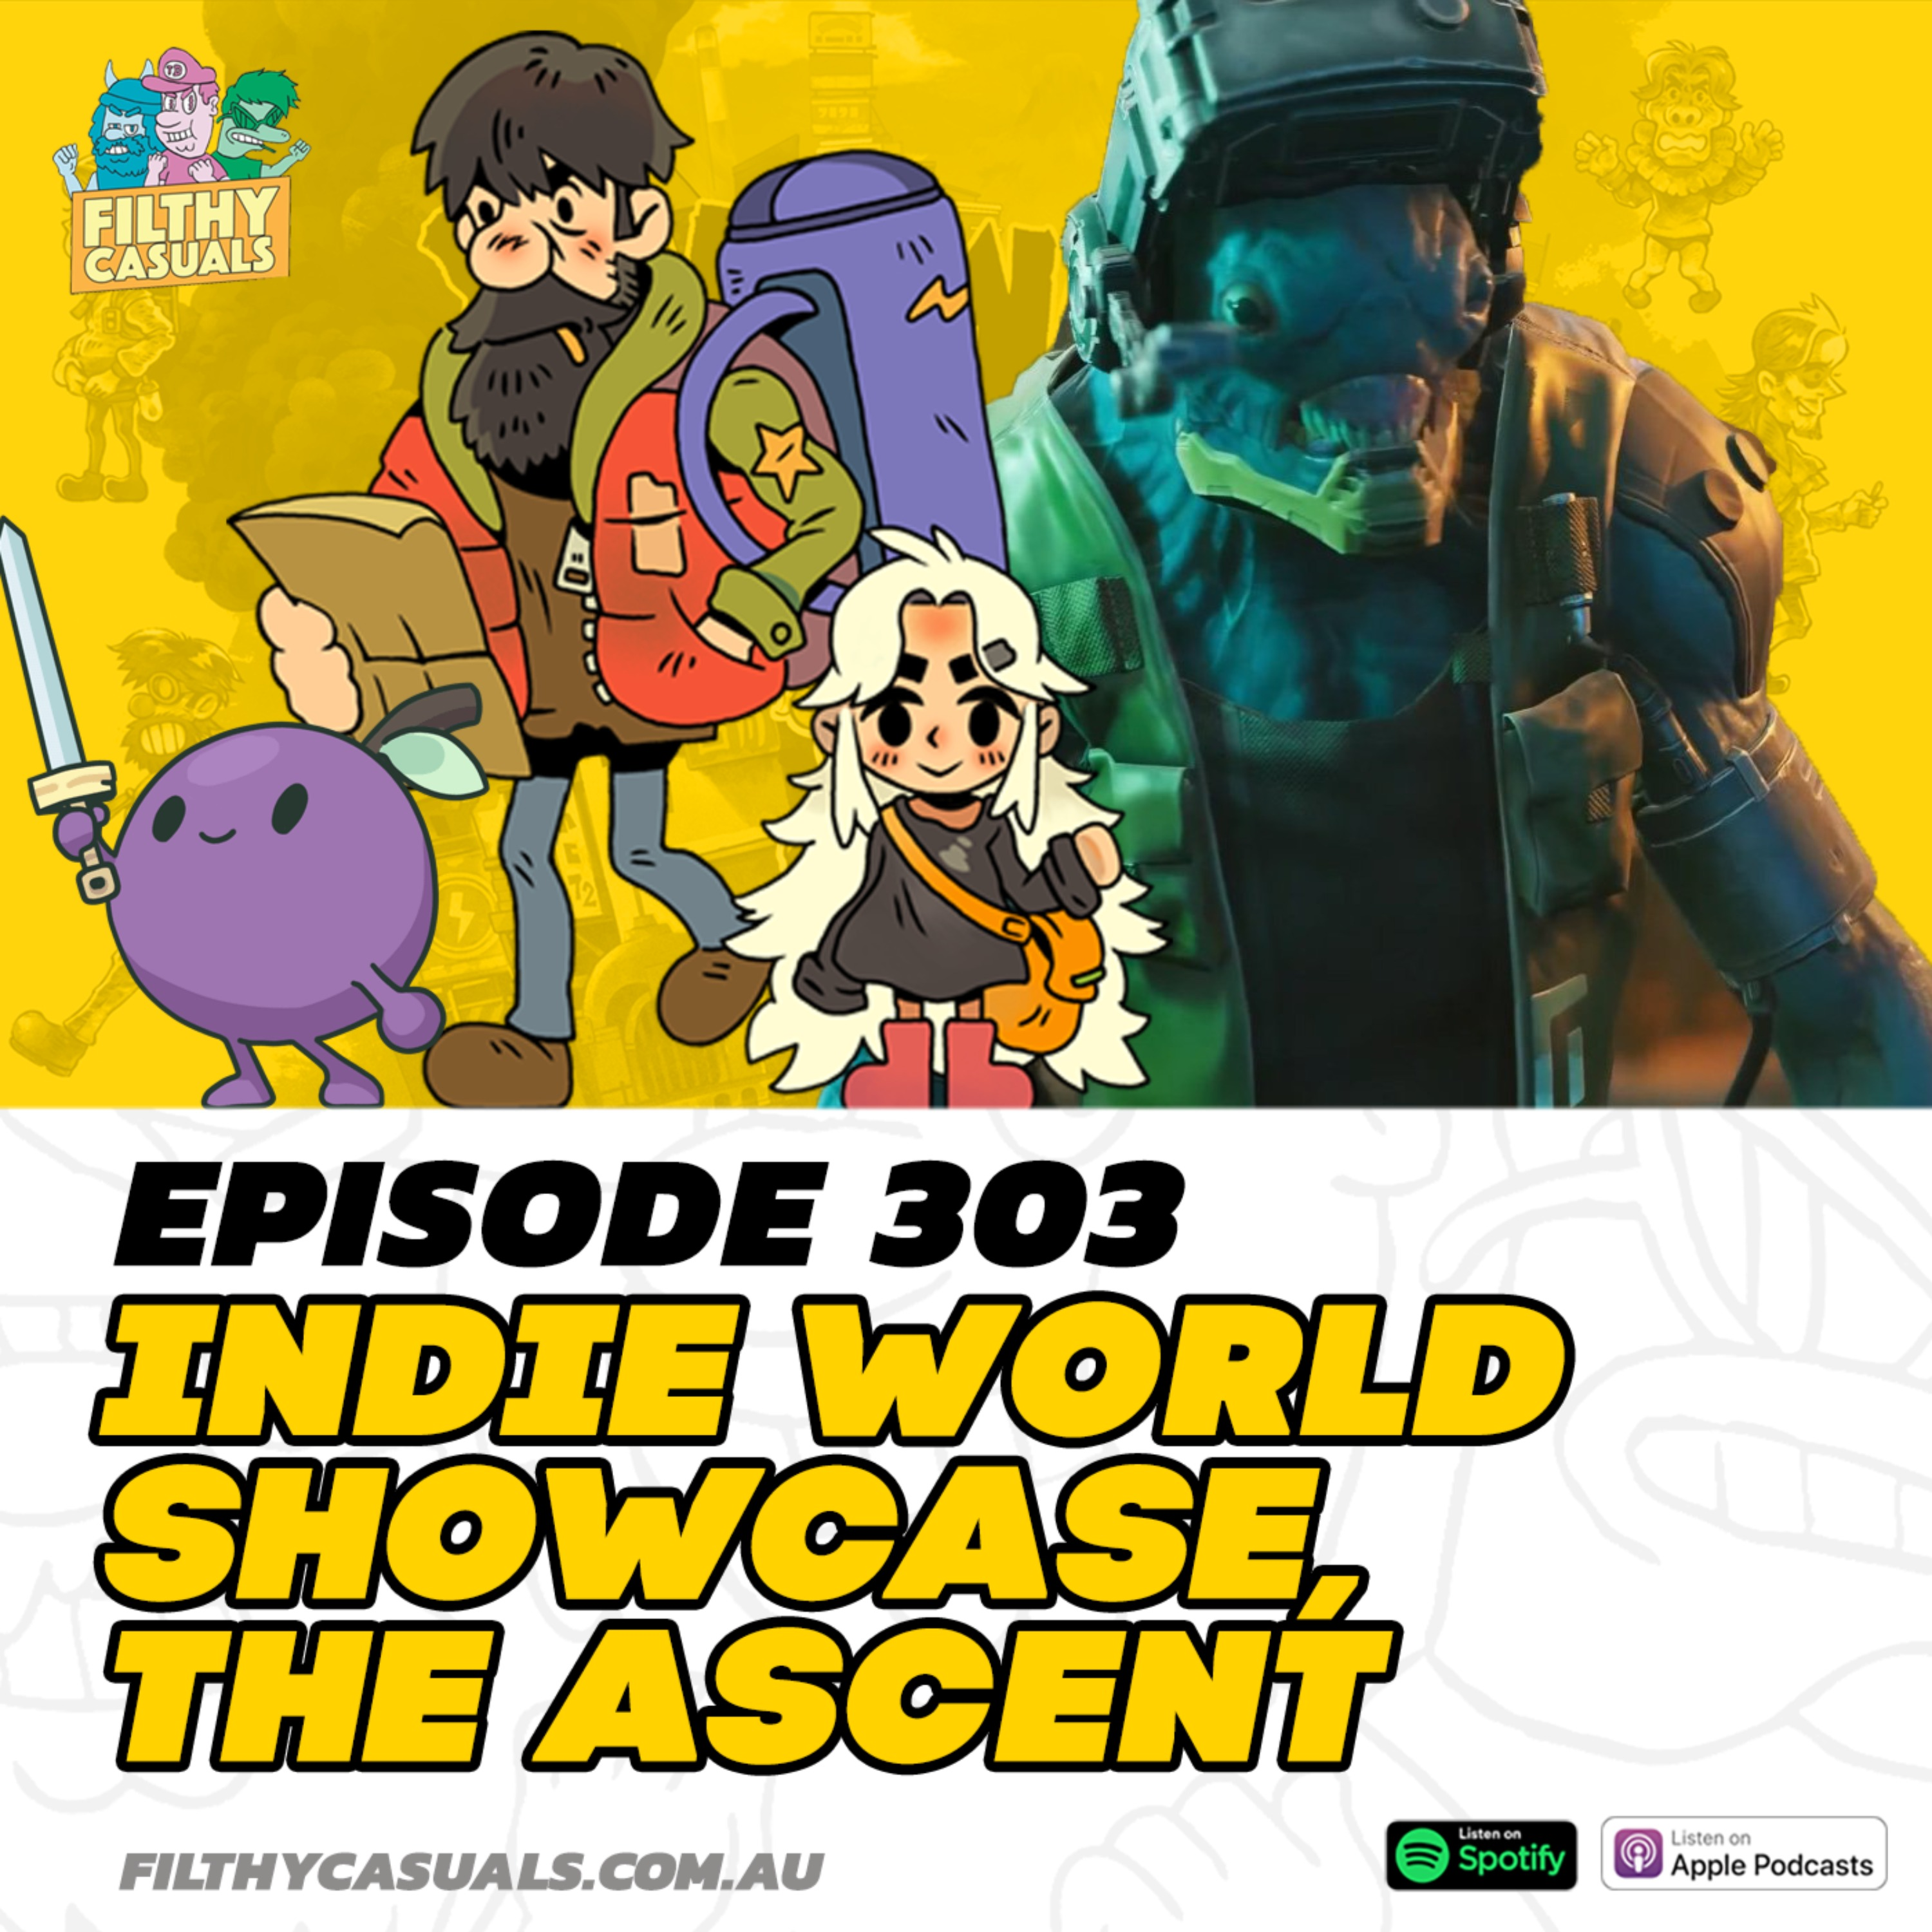 Episode 303: Indie World Showcase, The Ascent